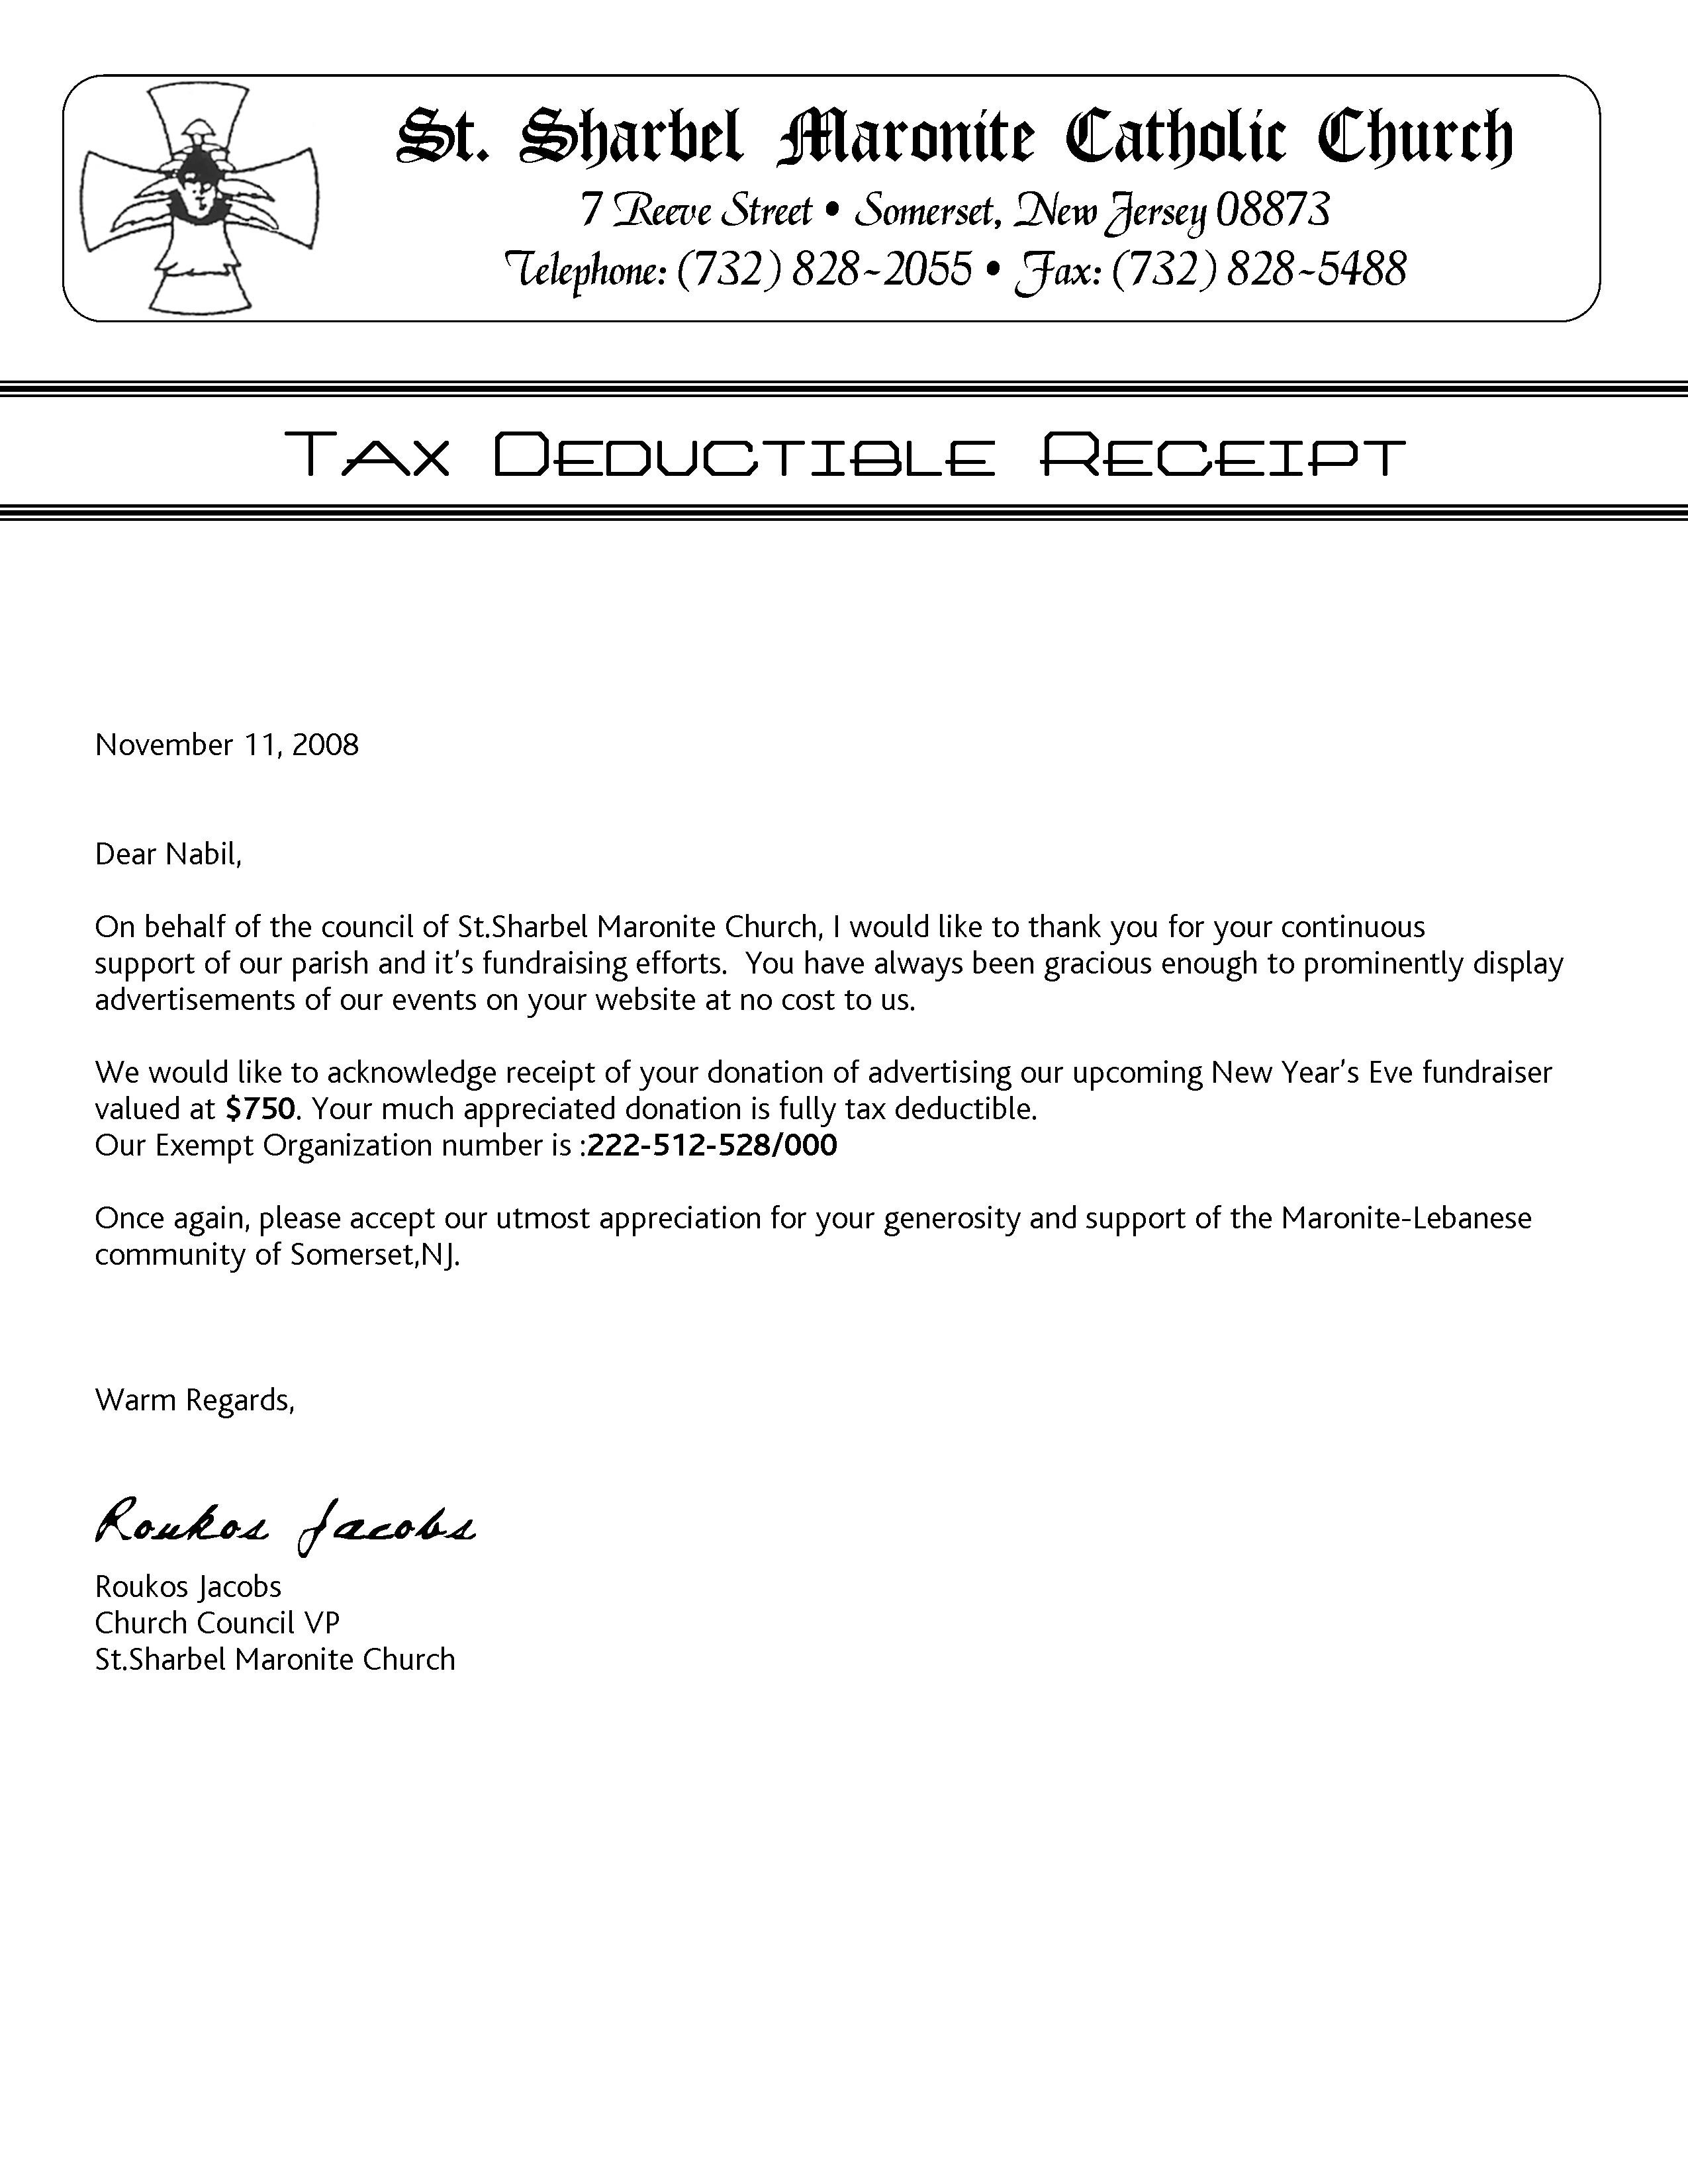 Tax Deductible Donation Thank You Letter Template - Tax Deductible Donation form Template